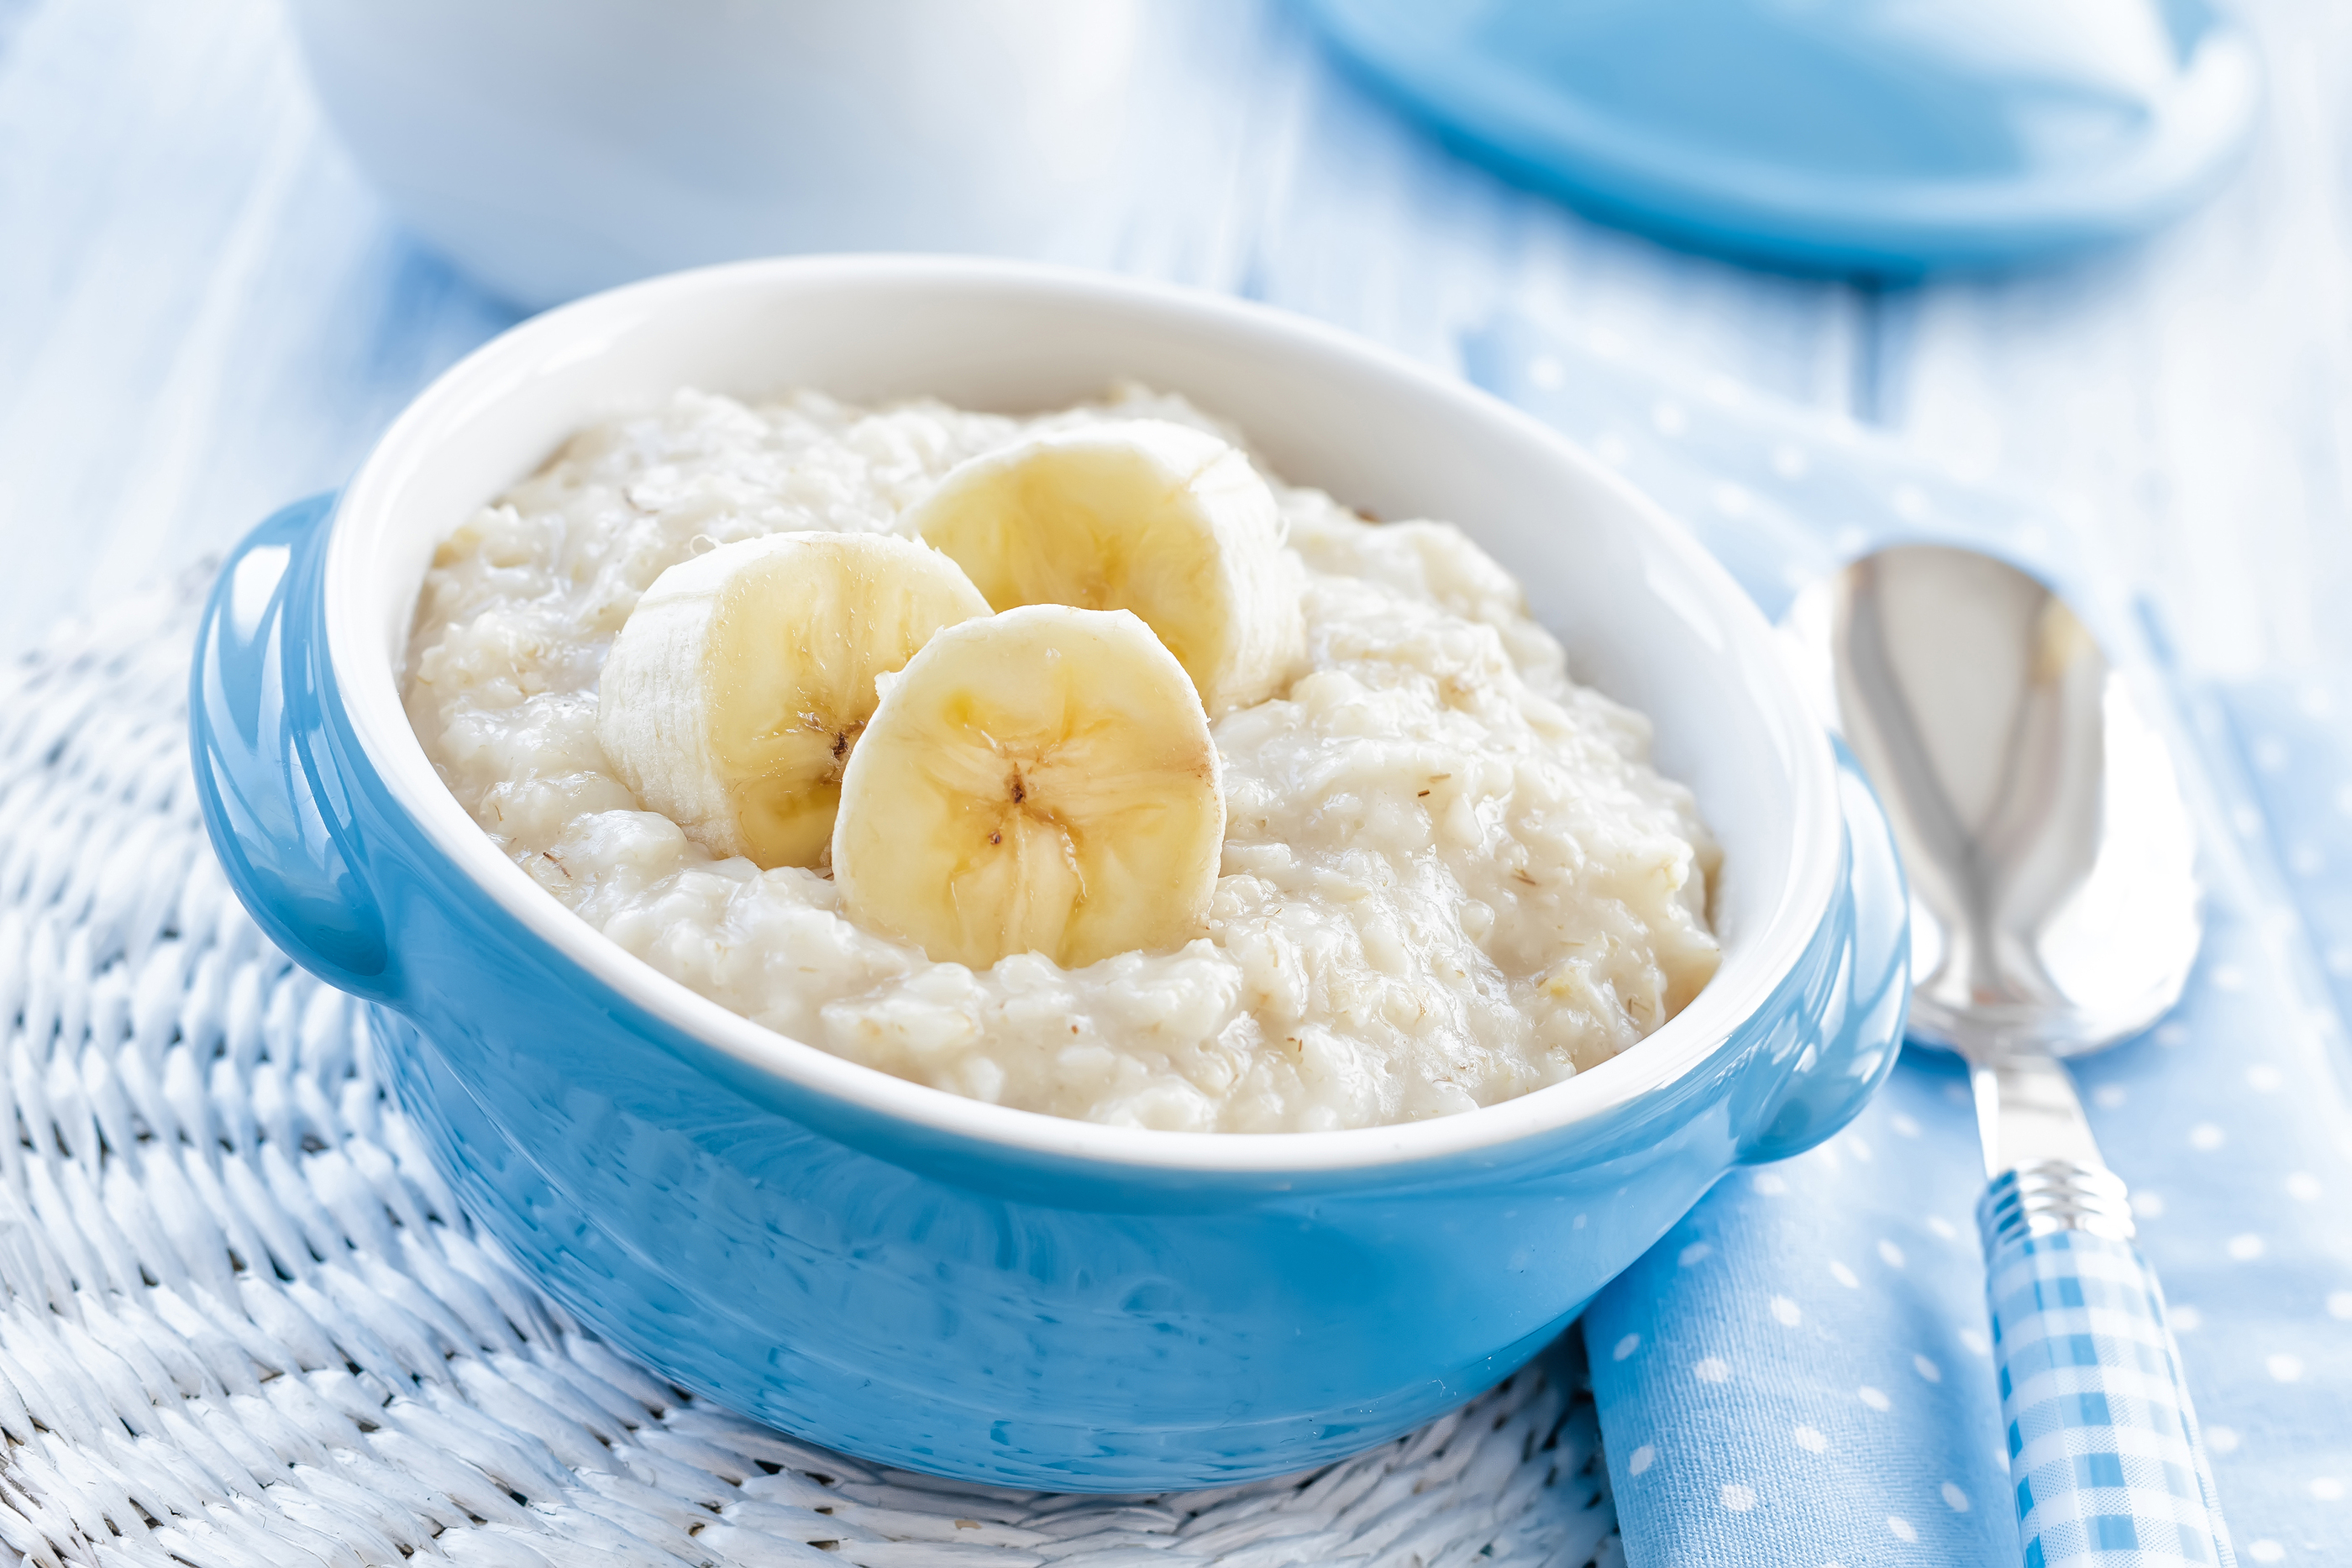 Making One Change Getting More Fiber Can Help With Weight Loss